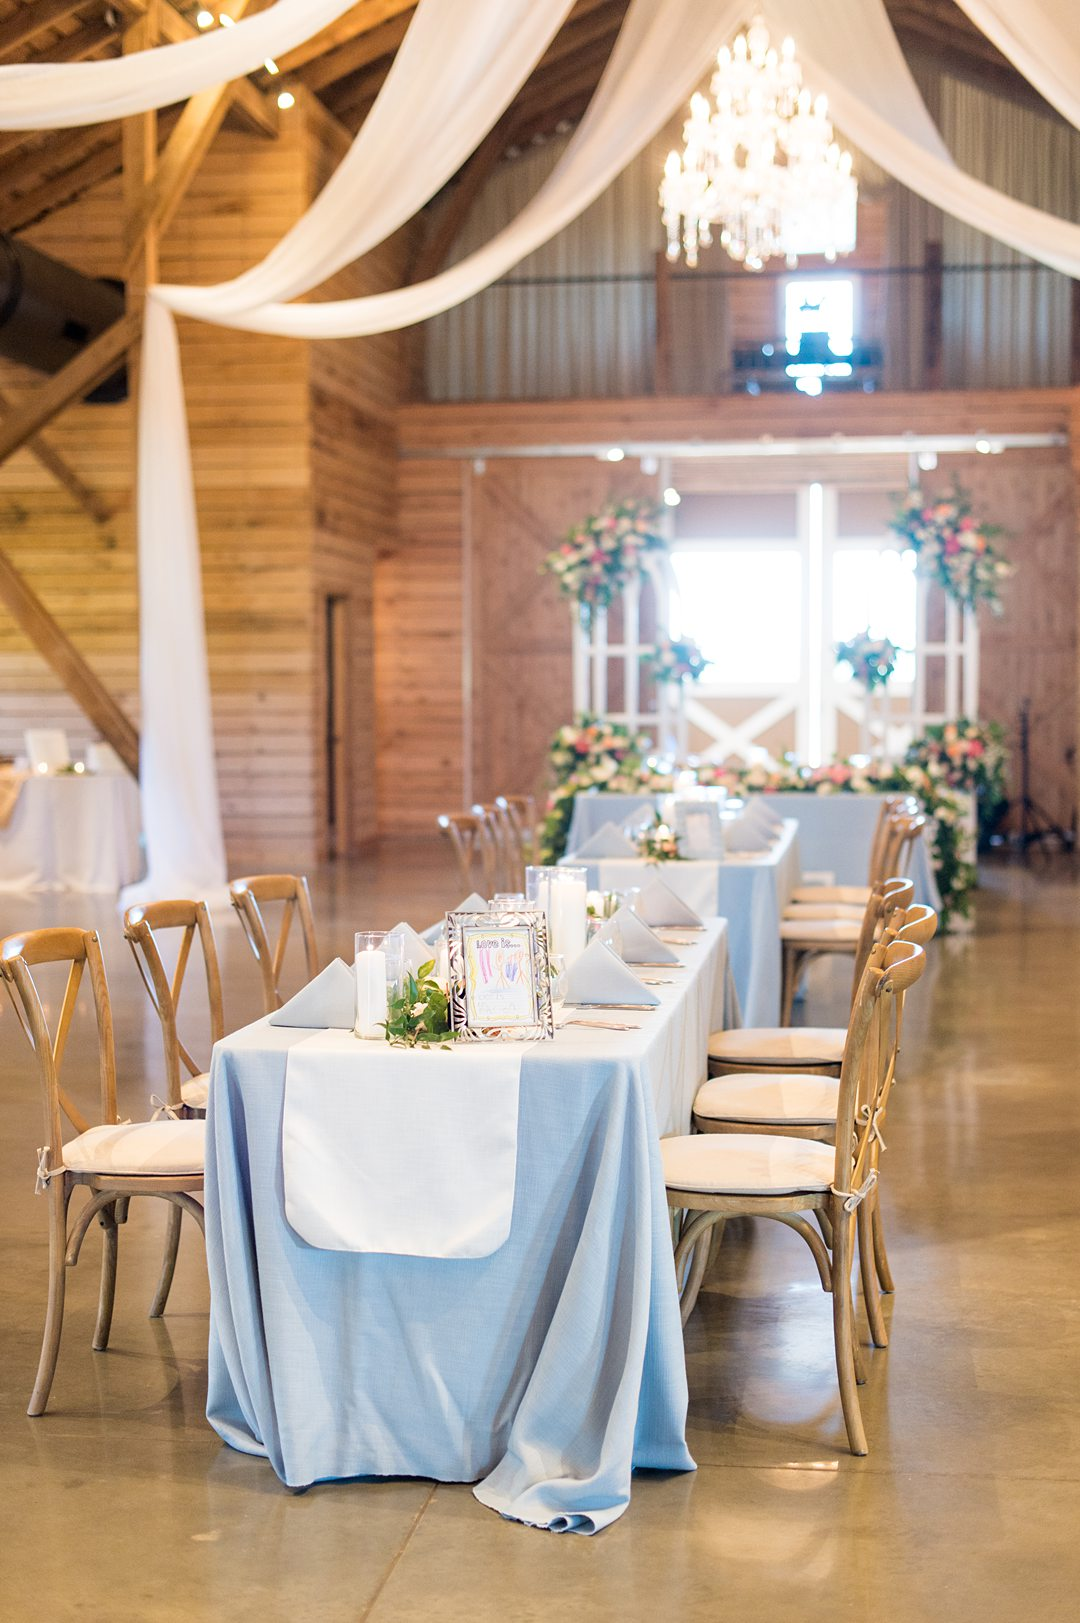 Blue linens with white runners and flowers lined the tables at a small wedding reception at The Lodge at Mount Ida Farm in Charlottesville, VA. Photos by Mikkel Paige Photography. #mikkelpaige #charlottesvillewedding #CharlottesvilleVA #MountaIdaFarm #weddingreception